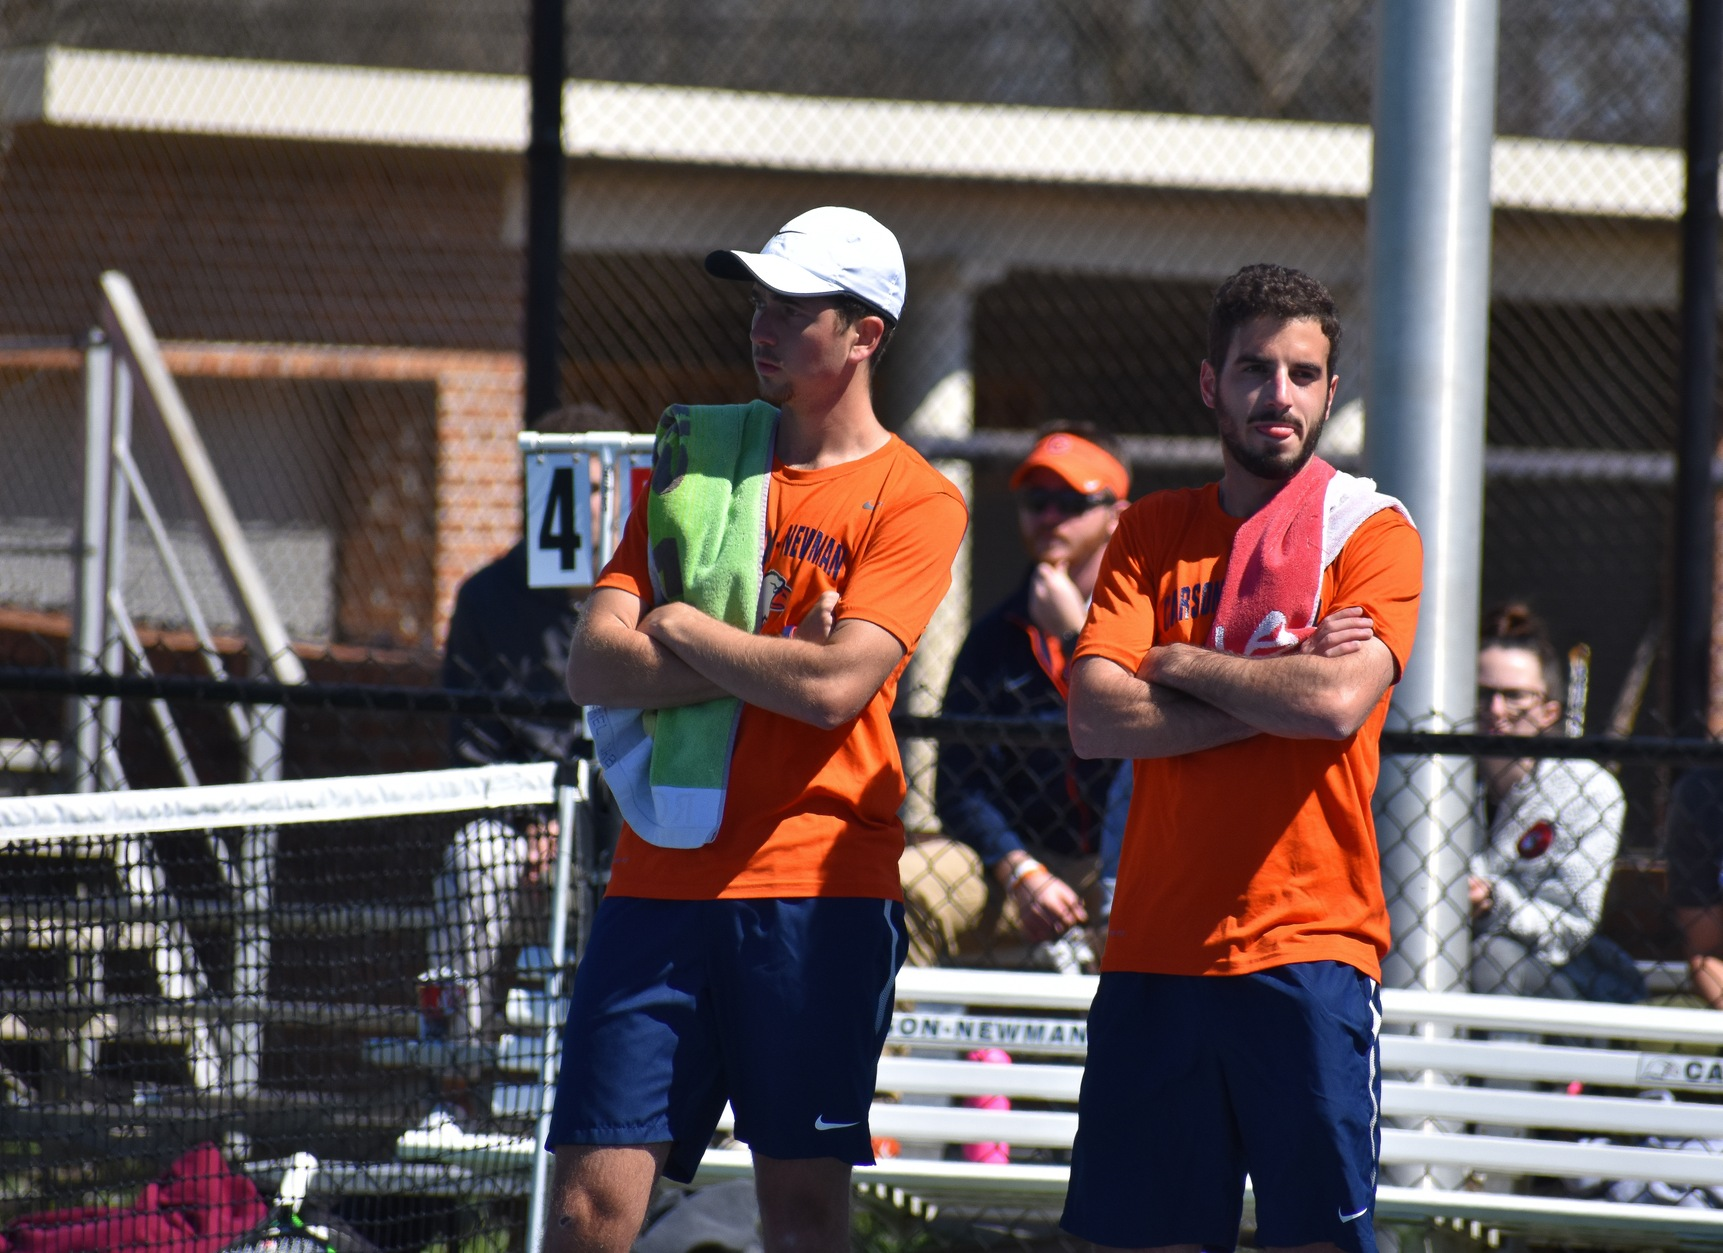 Bacete-Sanz, Dabdab grab singles wins but Eagles fall to the Patriots